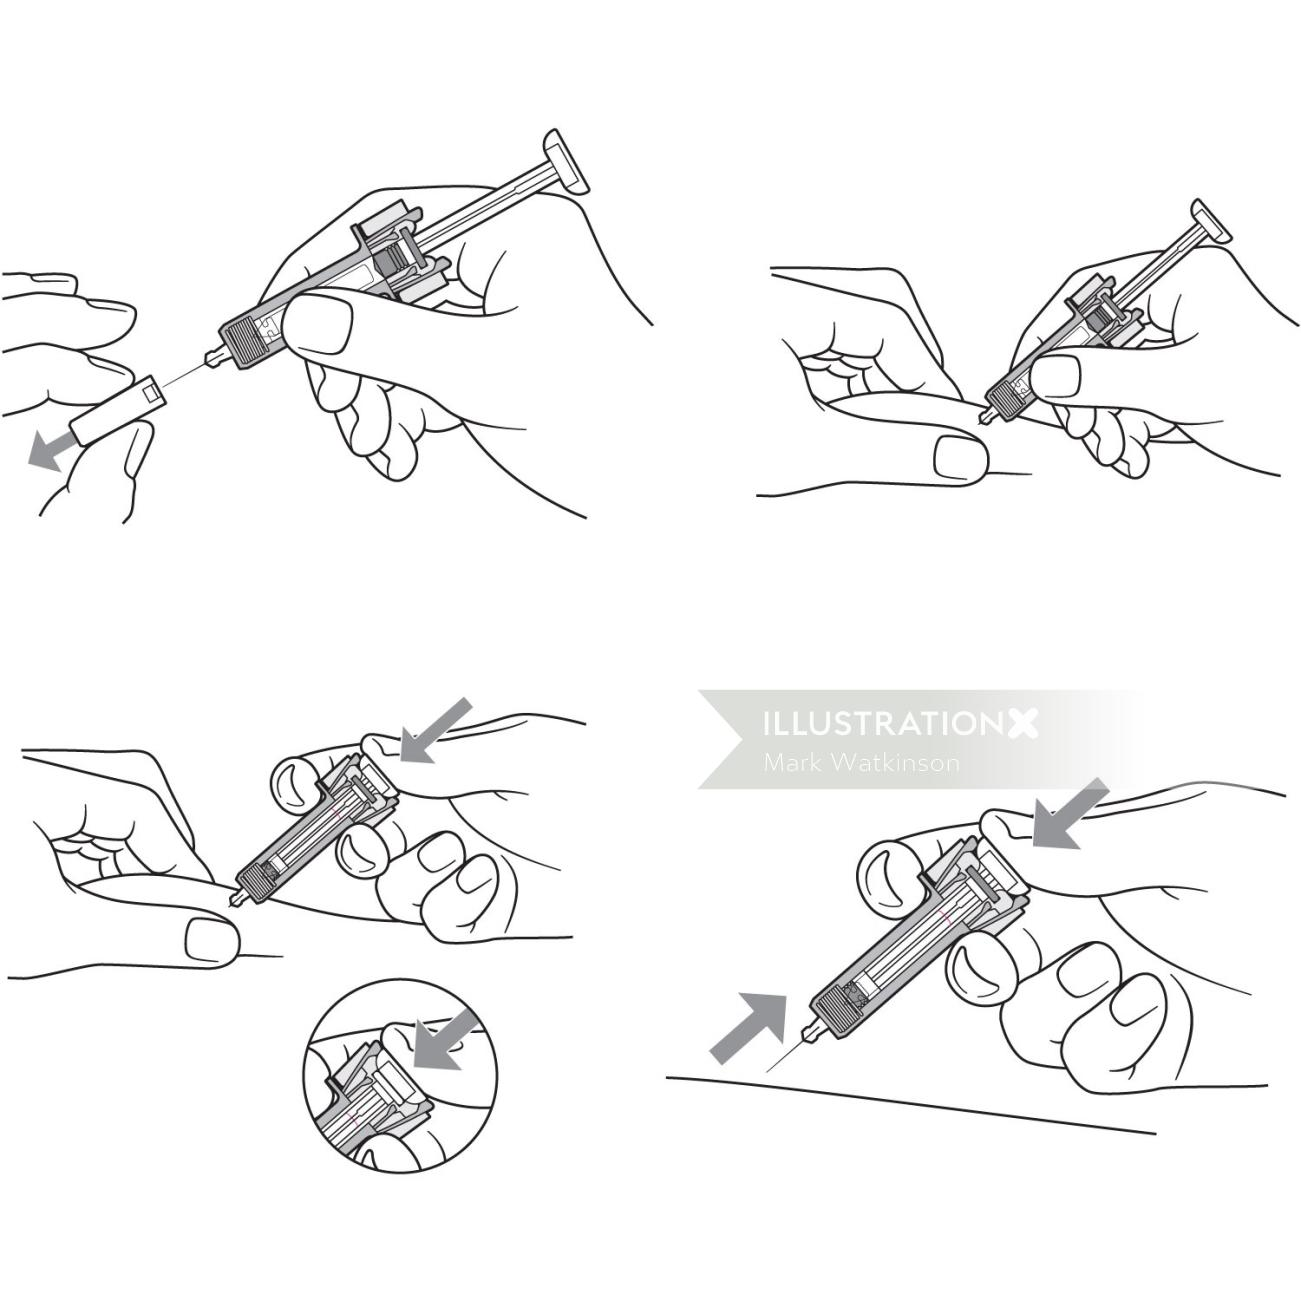 An illustration of injection